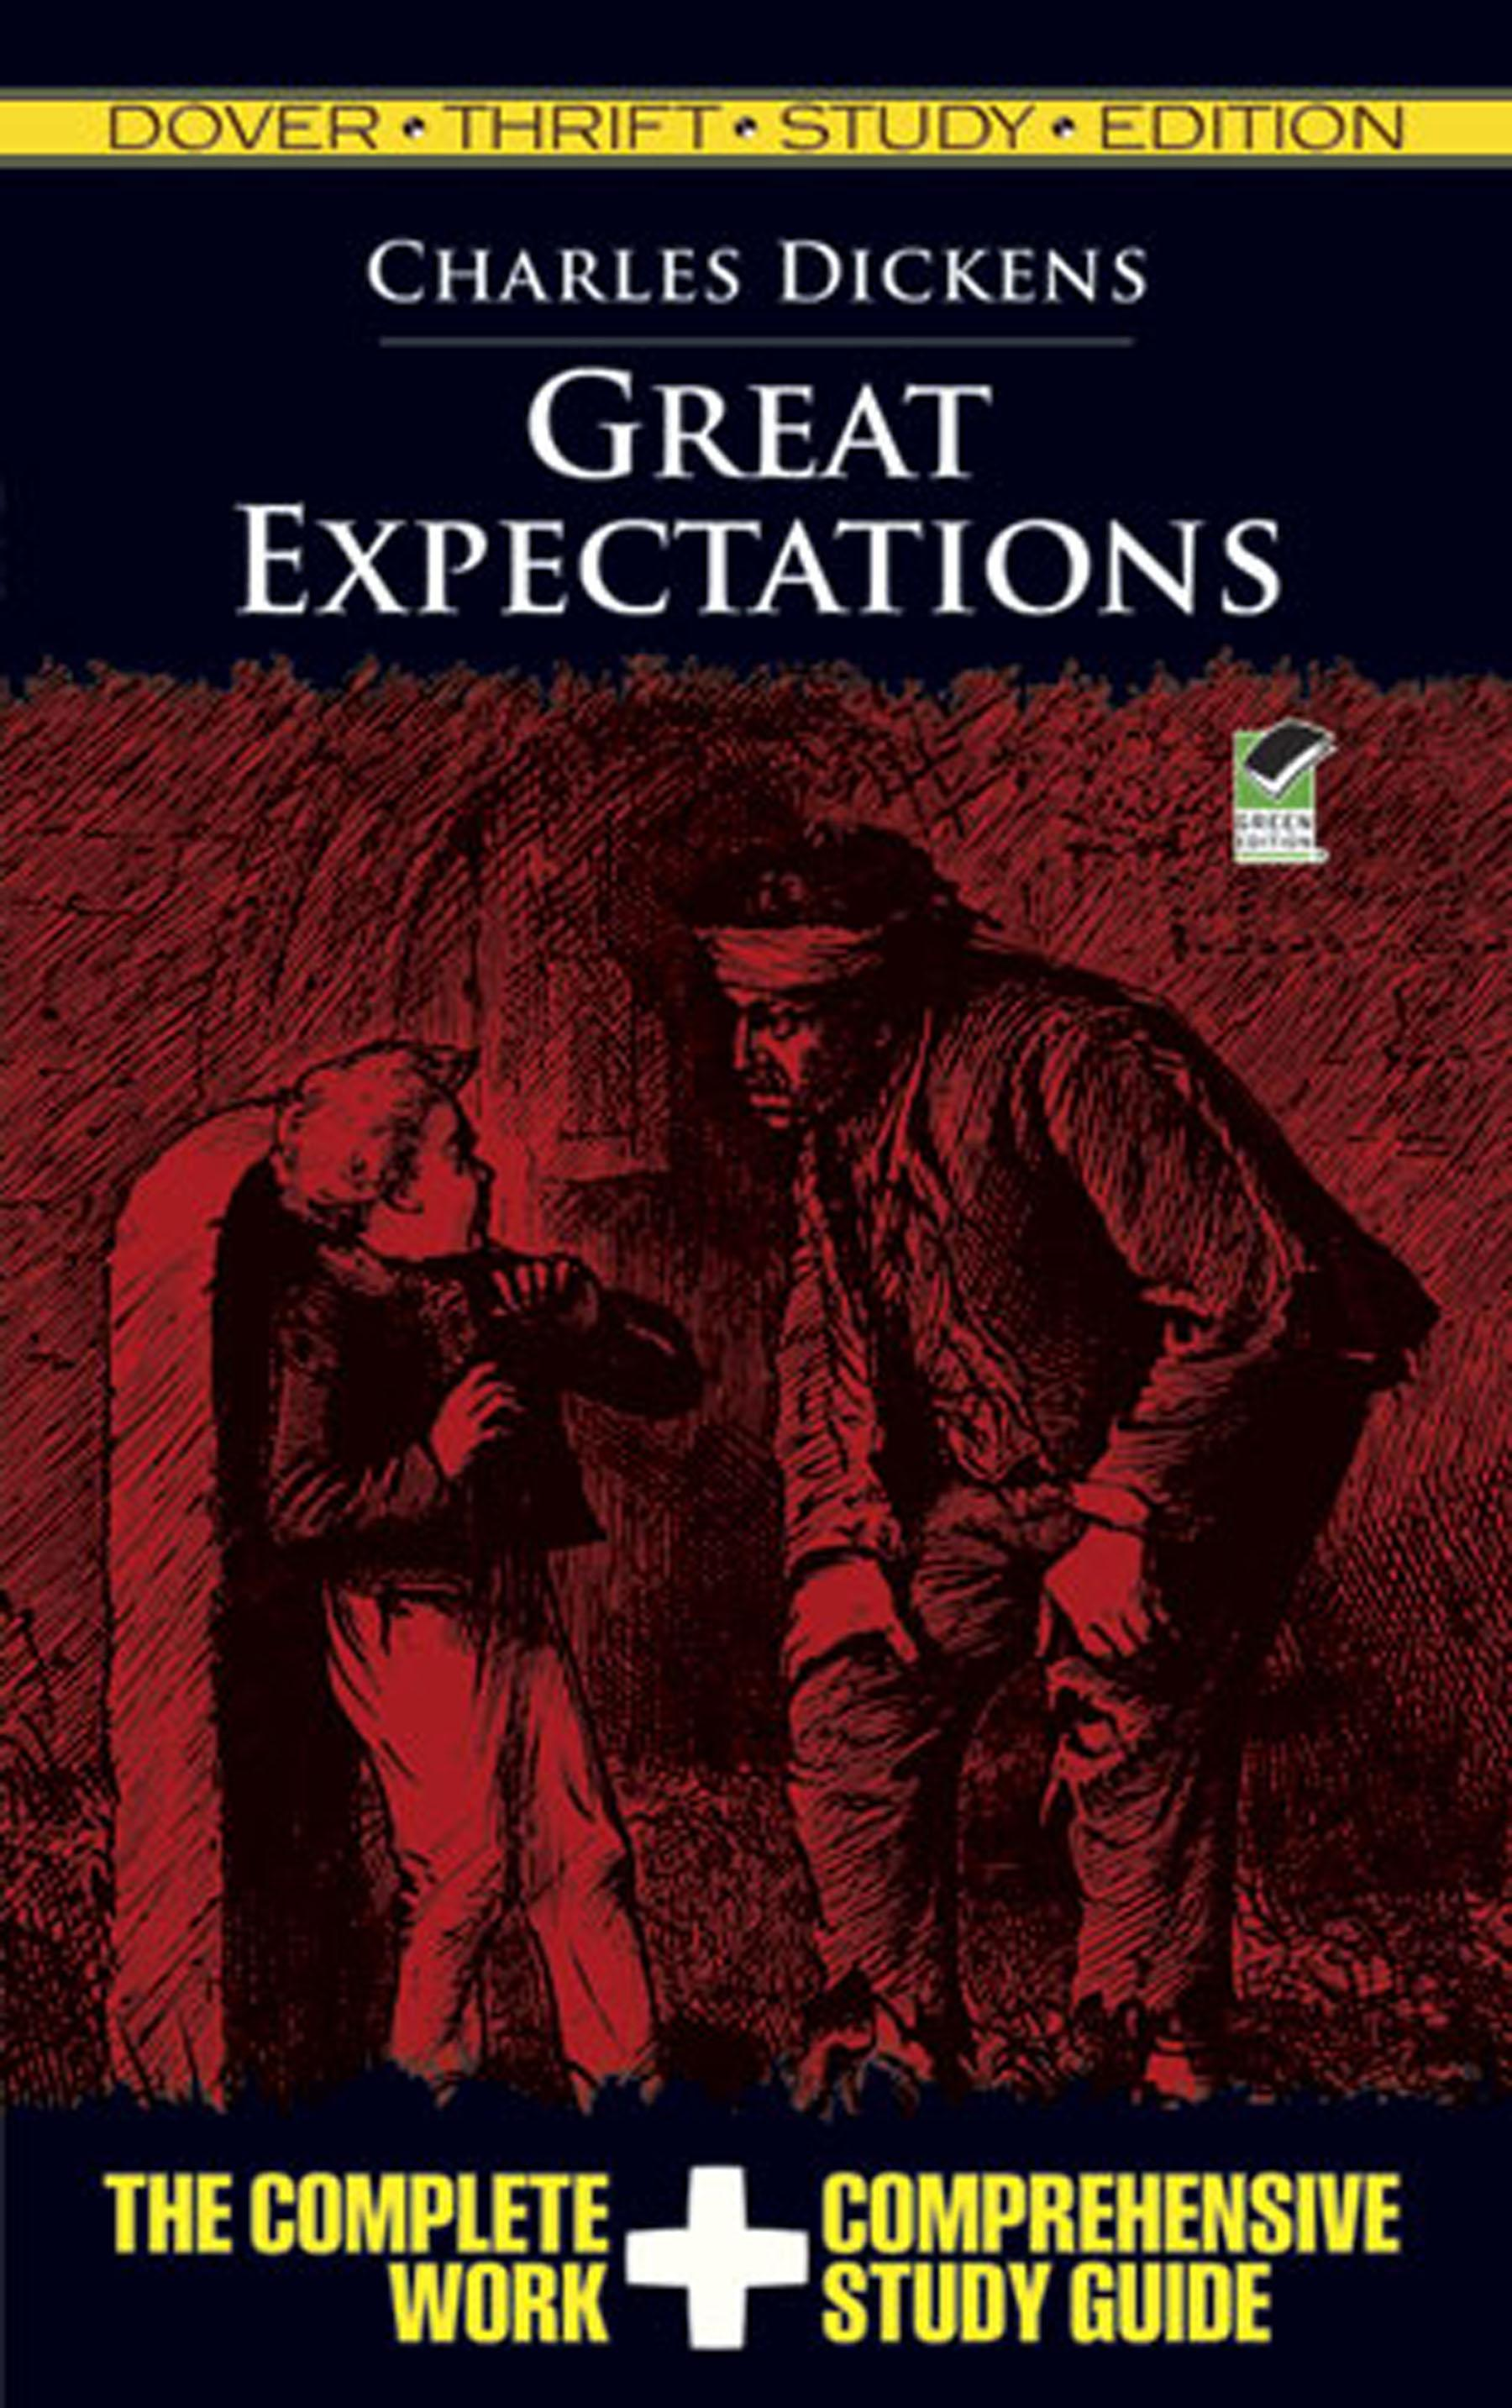 an analysis of the major themes in great expectations a novel by charles dickens Since it was first published over 150 years ago, charles dickens' great expectations has come to be known as a timeless and remarkably moving work in order for this novel to be properly understood, a thoughtful analysis of its major themes must be given socio-economic status and hierarchy the.